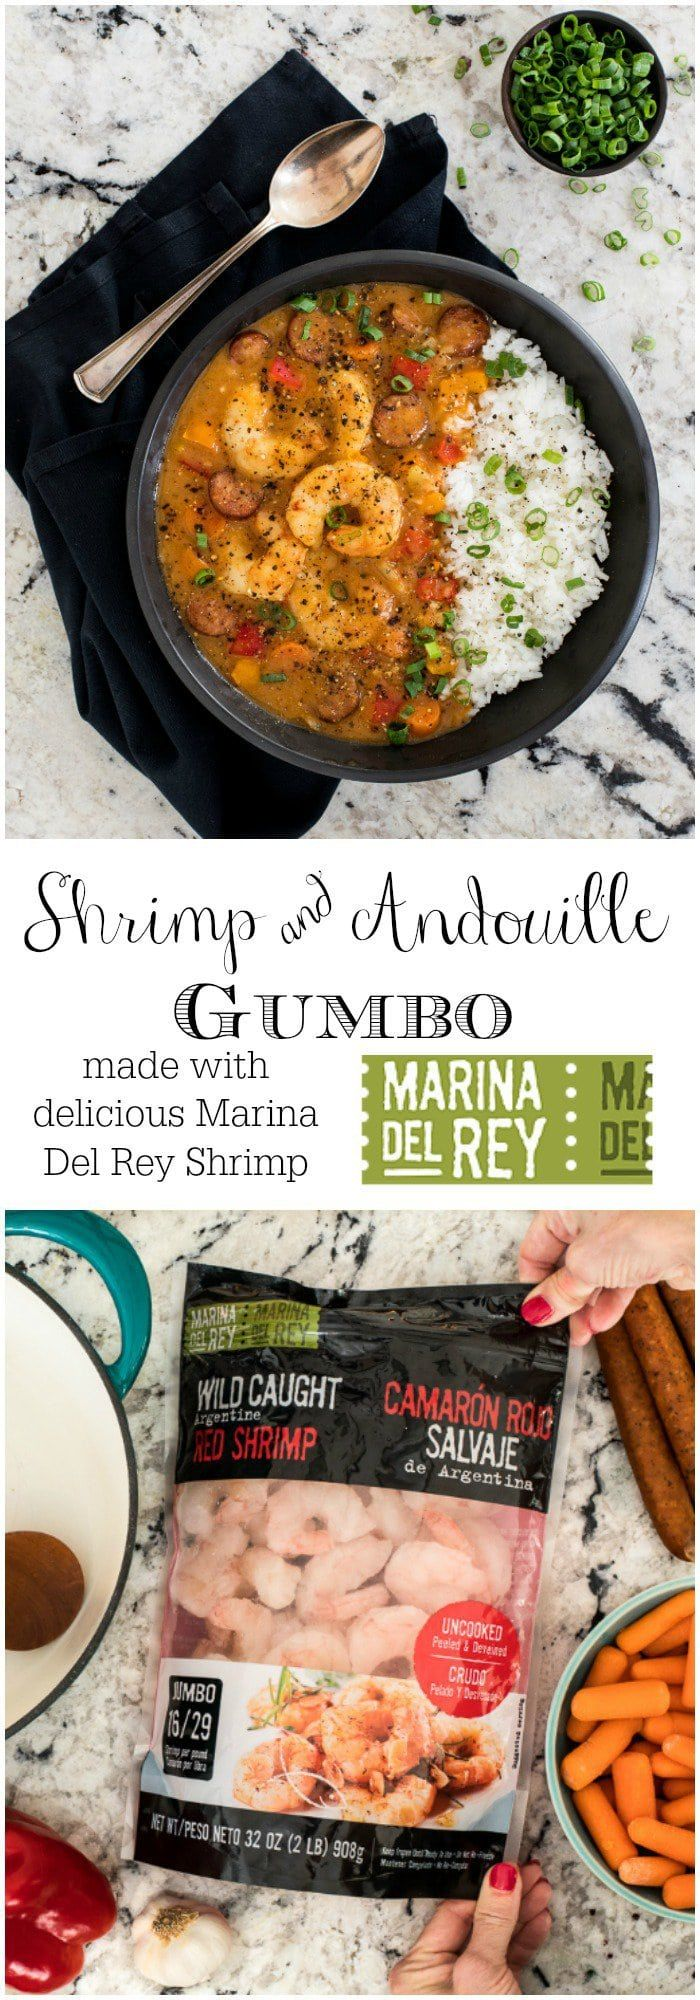 Perfect for entertaining, this Shrimp and Andouille Gumbo is loaded with succulent shrimp, spicy sausage and lots of fresh veggies!   via @cafesucrefarine